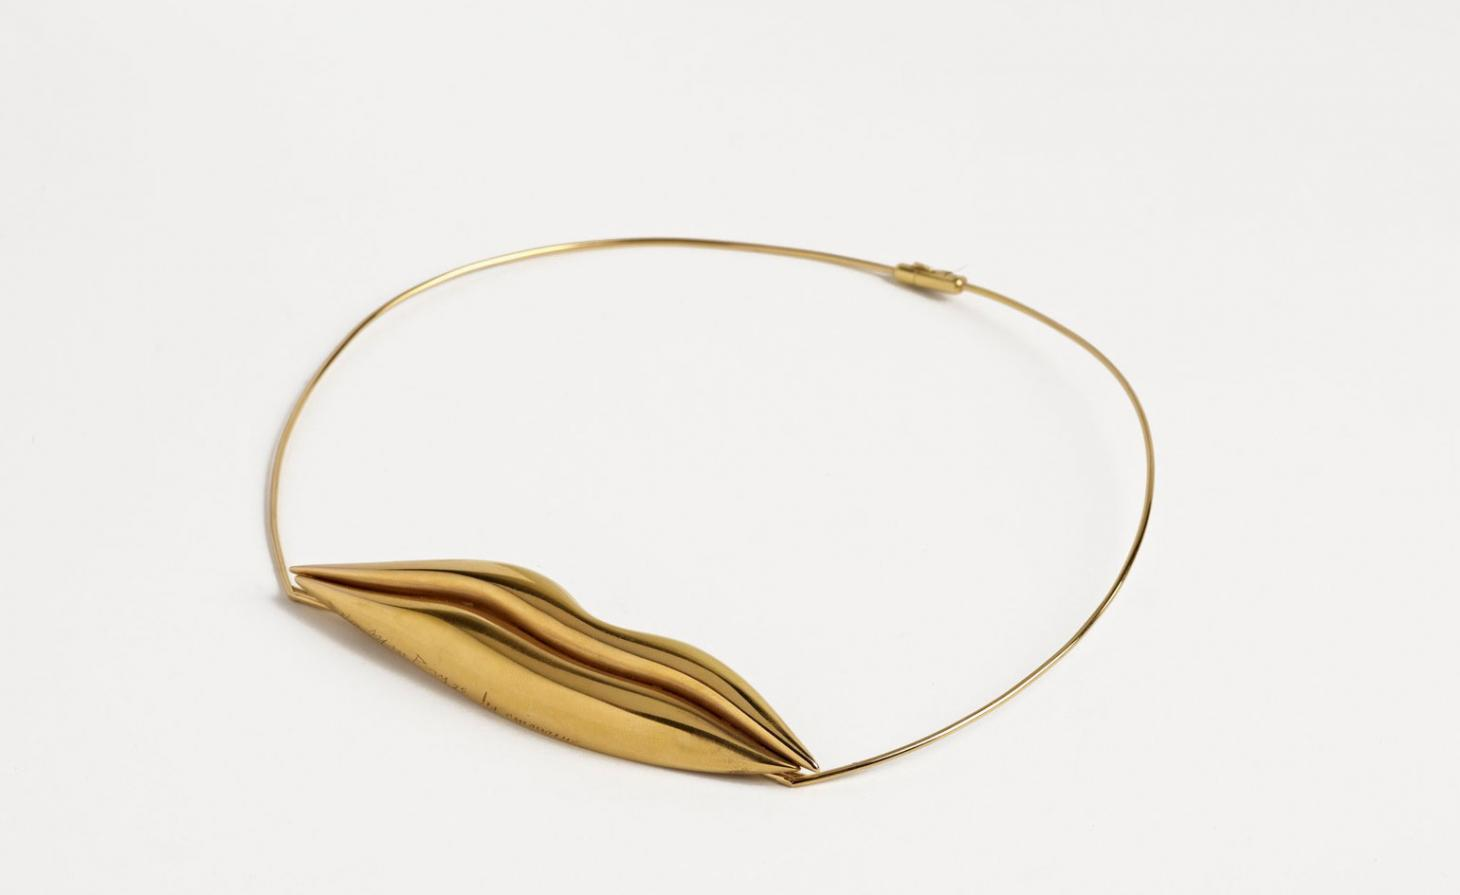 Gold necklace with a pair of golden lips